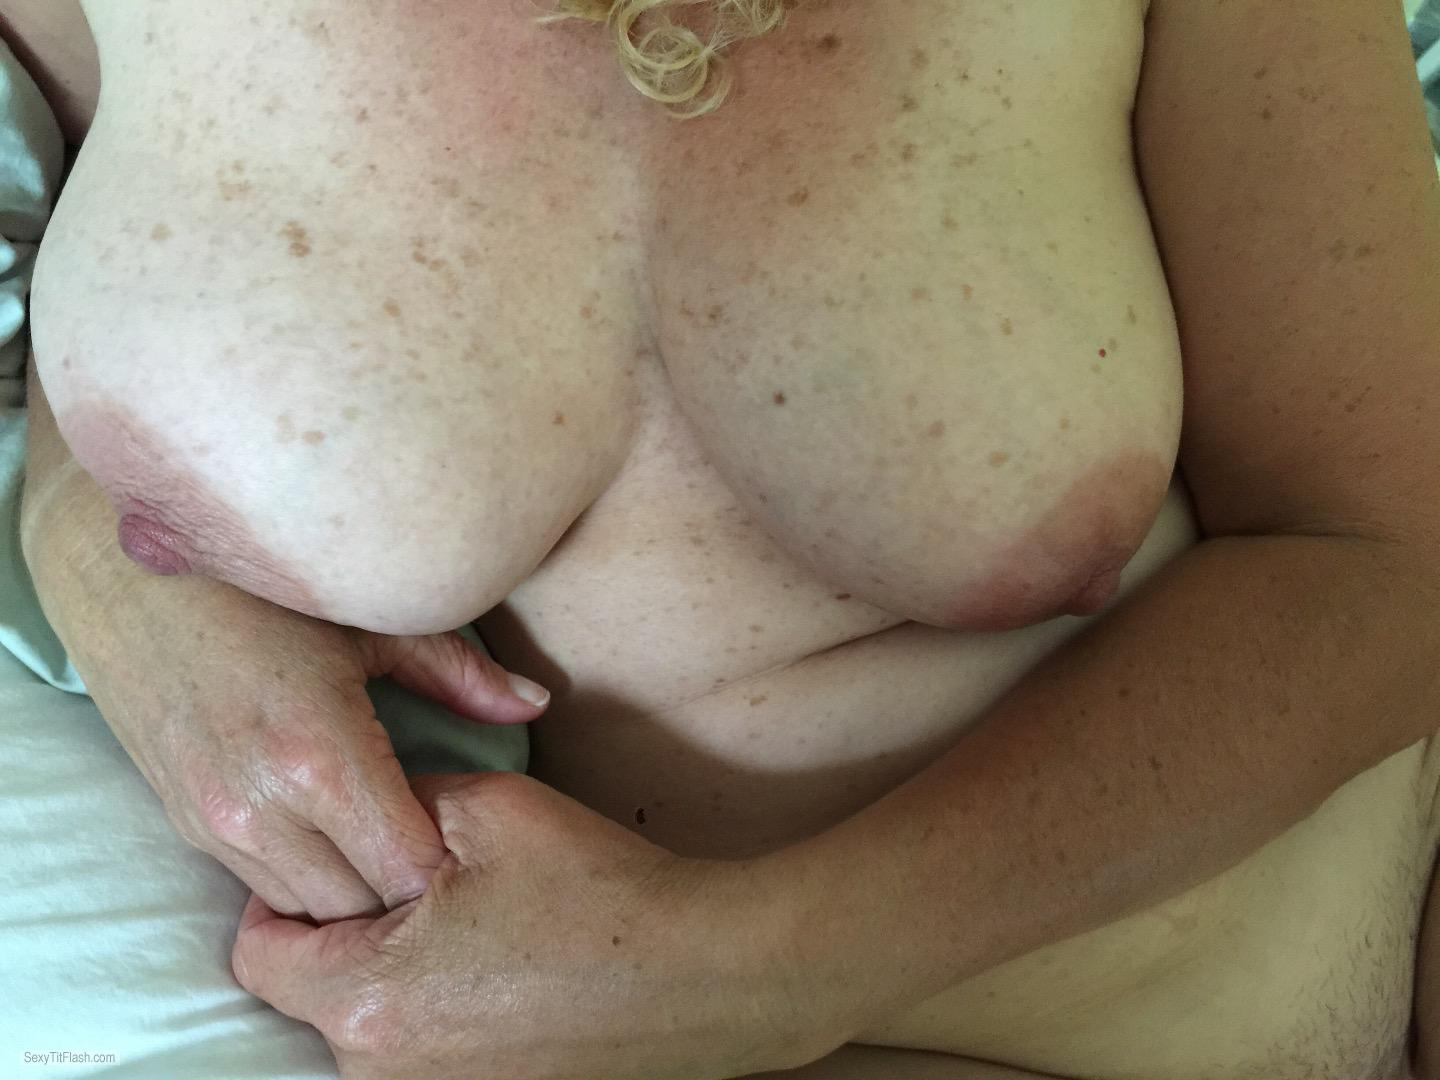 Tit Flash: My Very Big Tits - Topless CanDD from United Kingdom